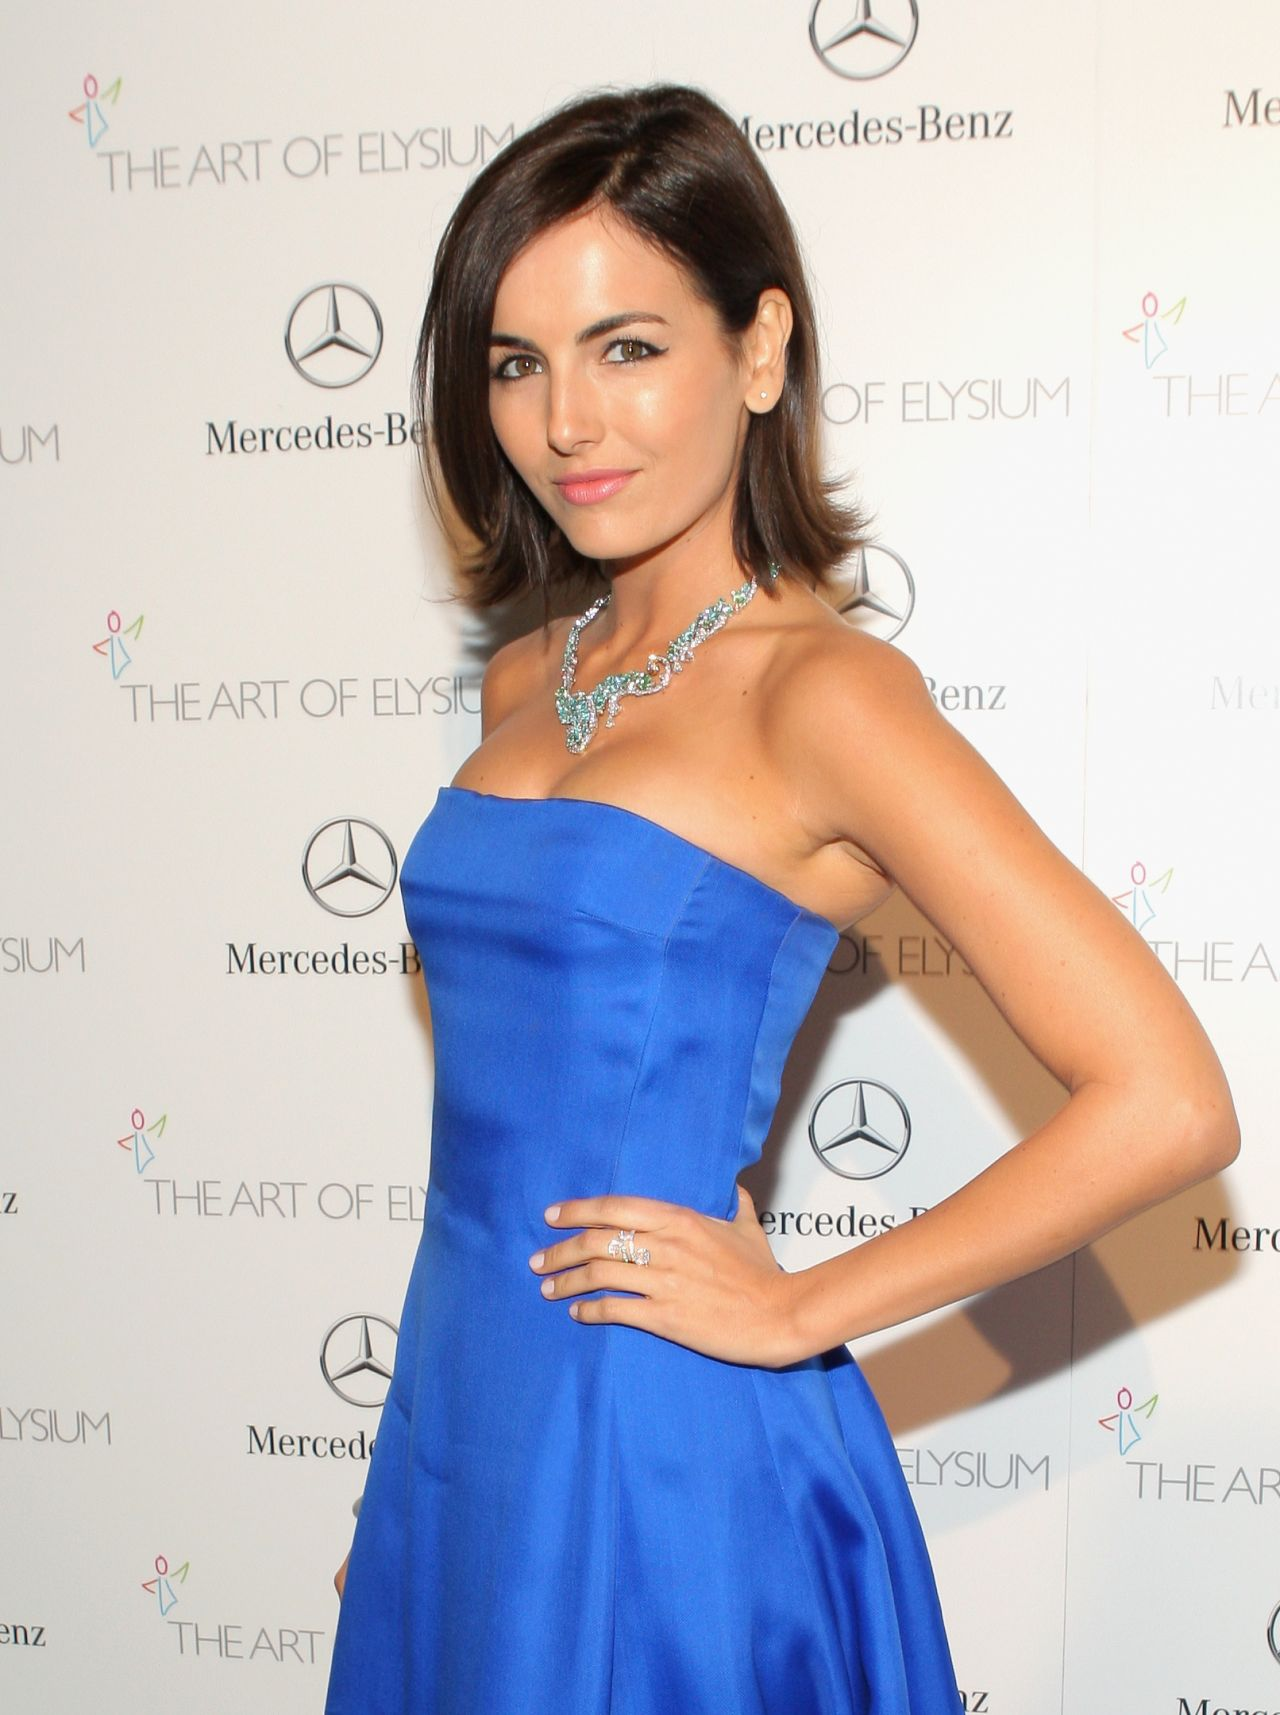 Camilla Belle Wears Ralph Lauren at - The Art of Elysium HEAVEN Gala in Los Angeles 2014